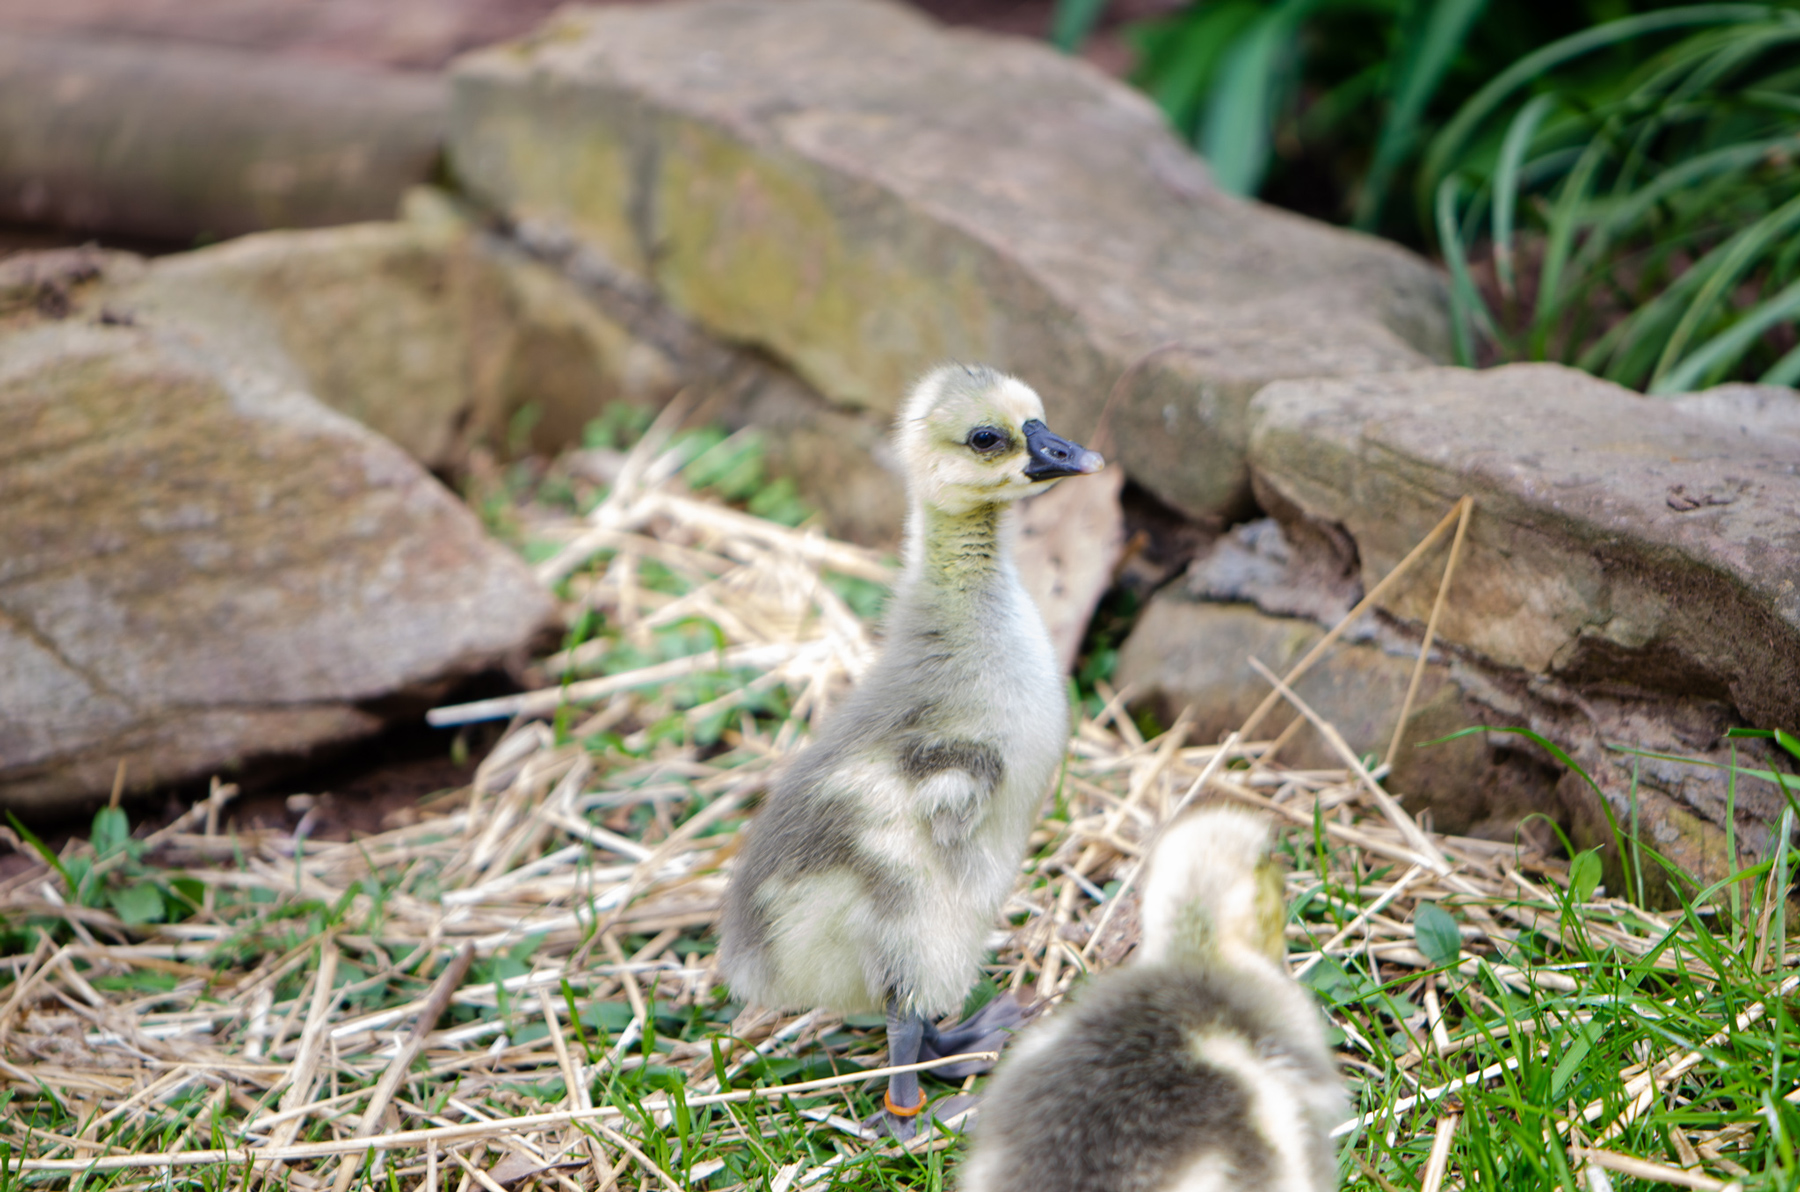 McMurray Hatchery | Using Geese in the Garden | Brown Chinese Geese